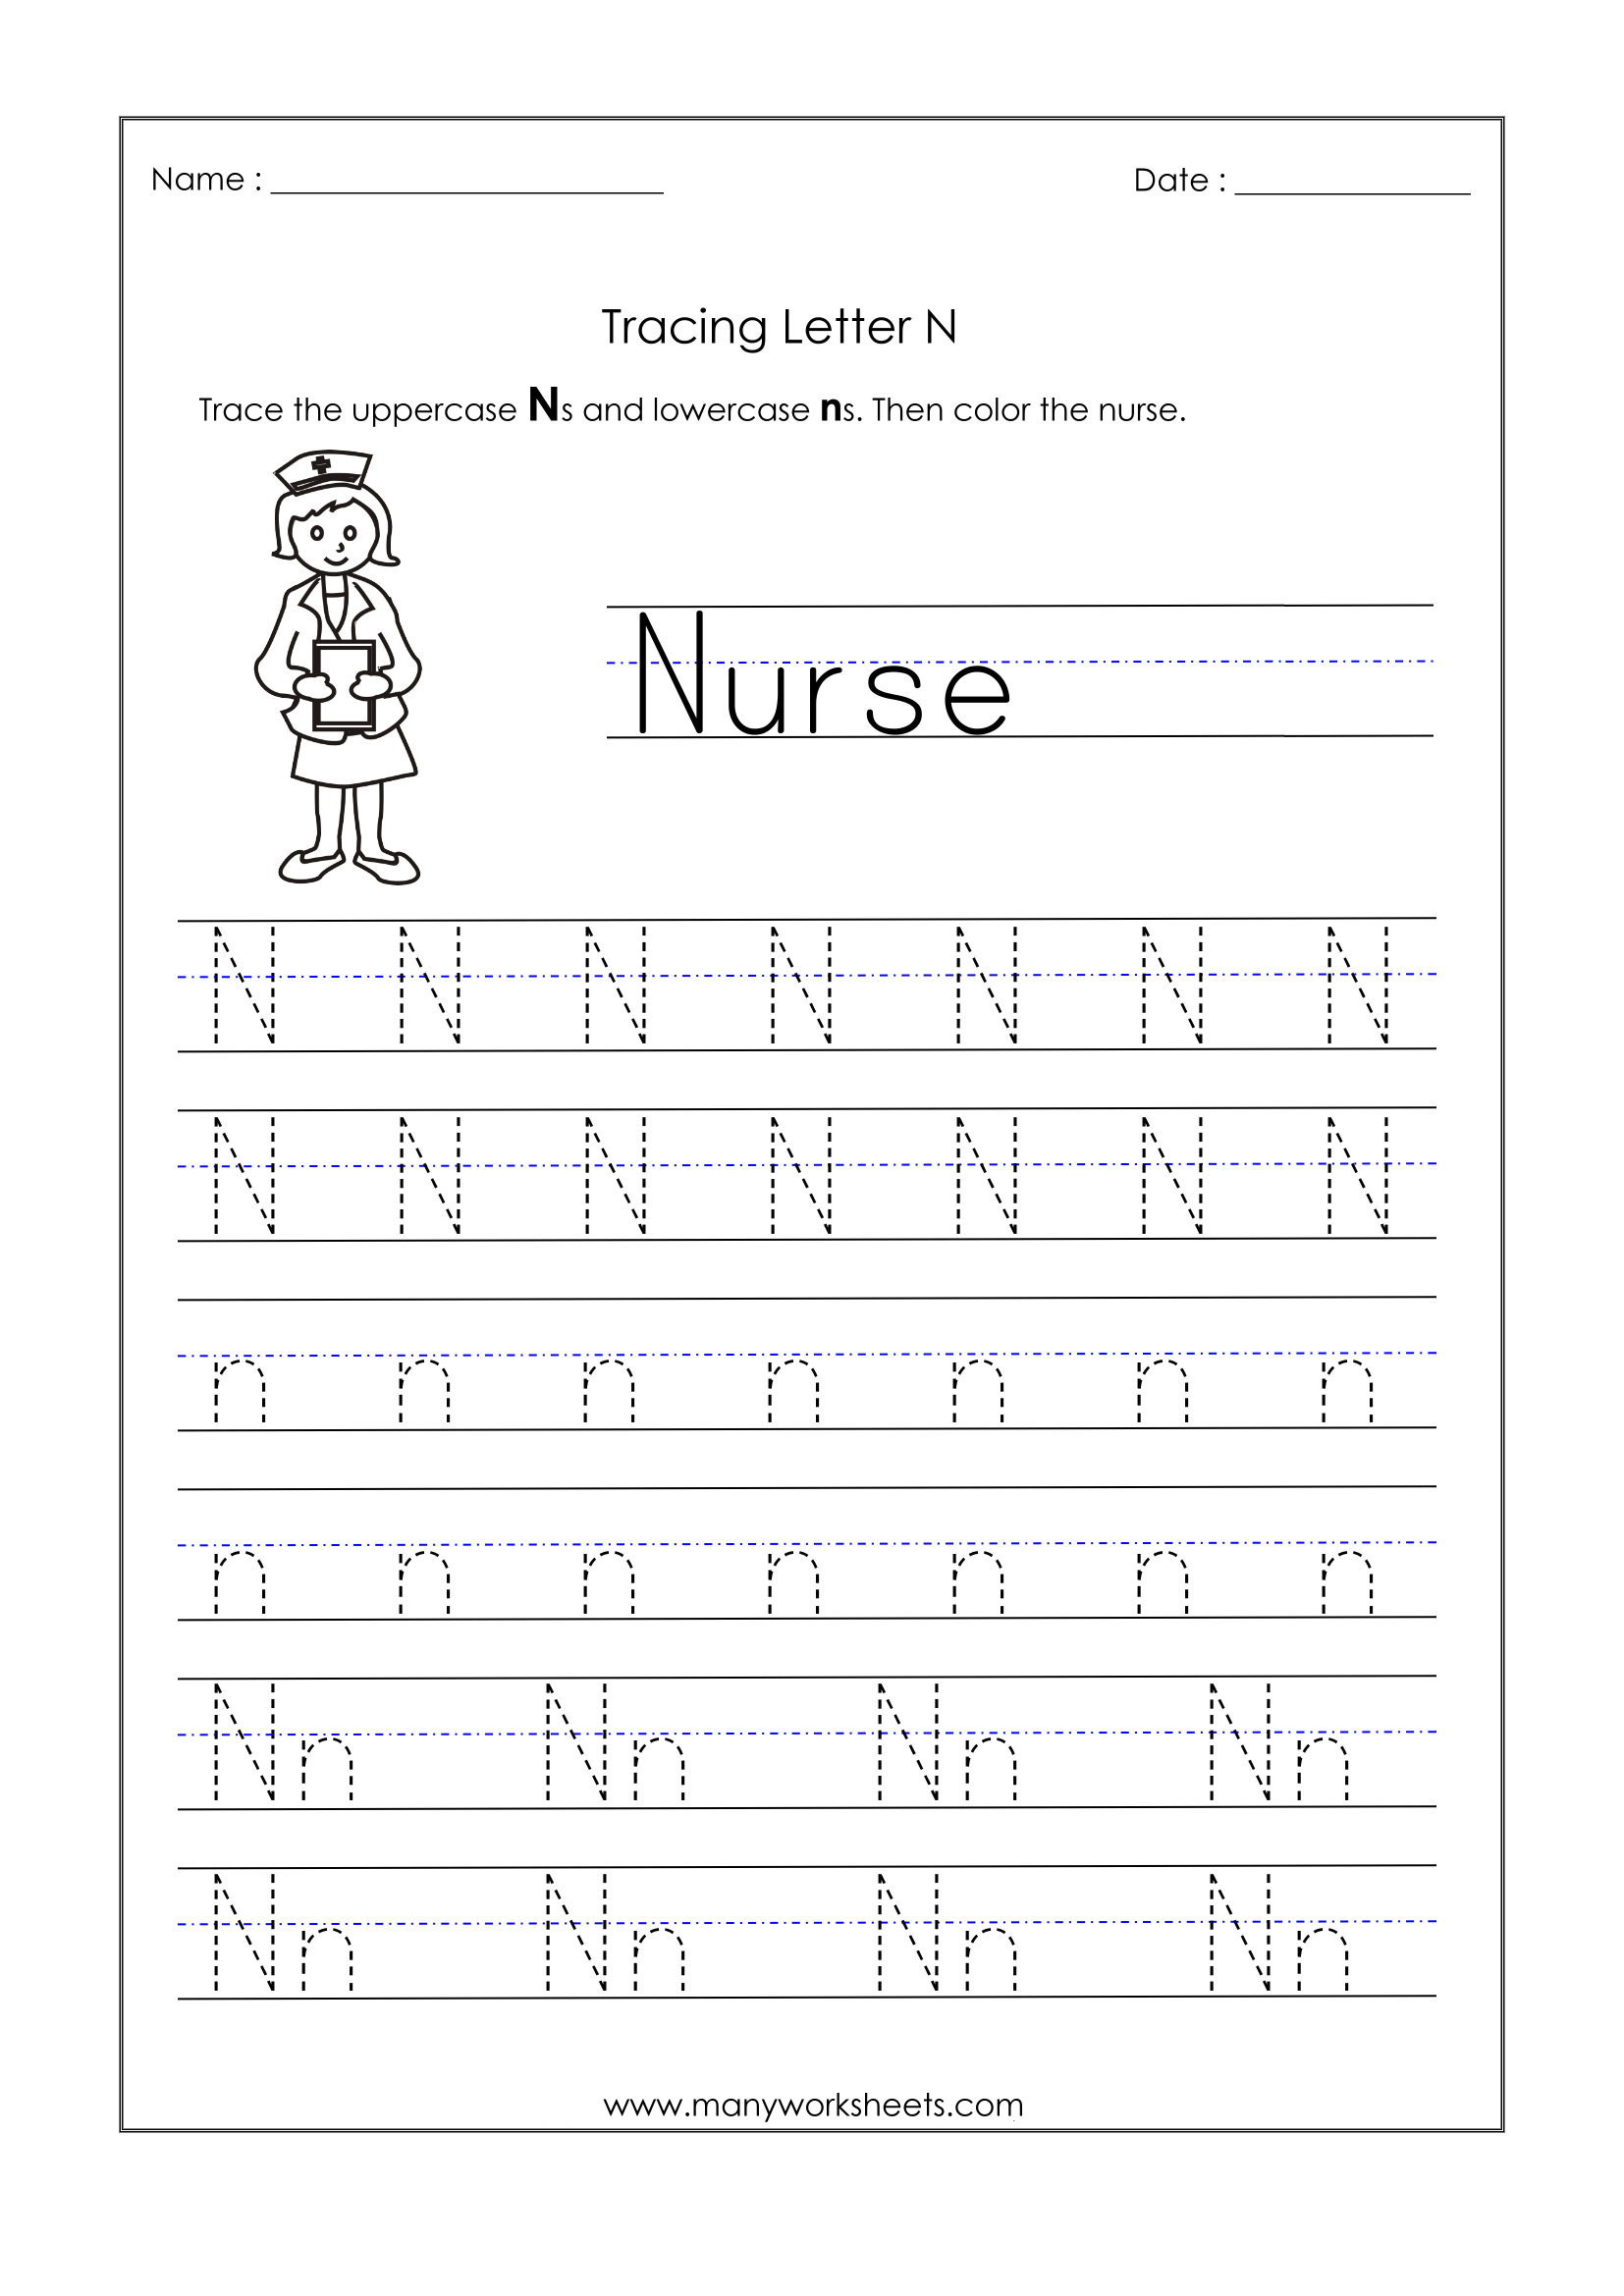 Letter N Tracing Worksheets Preschool Math Worksheet Preschool Tracing Letters 71ottenr25l Math